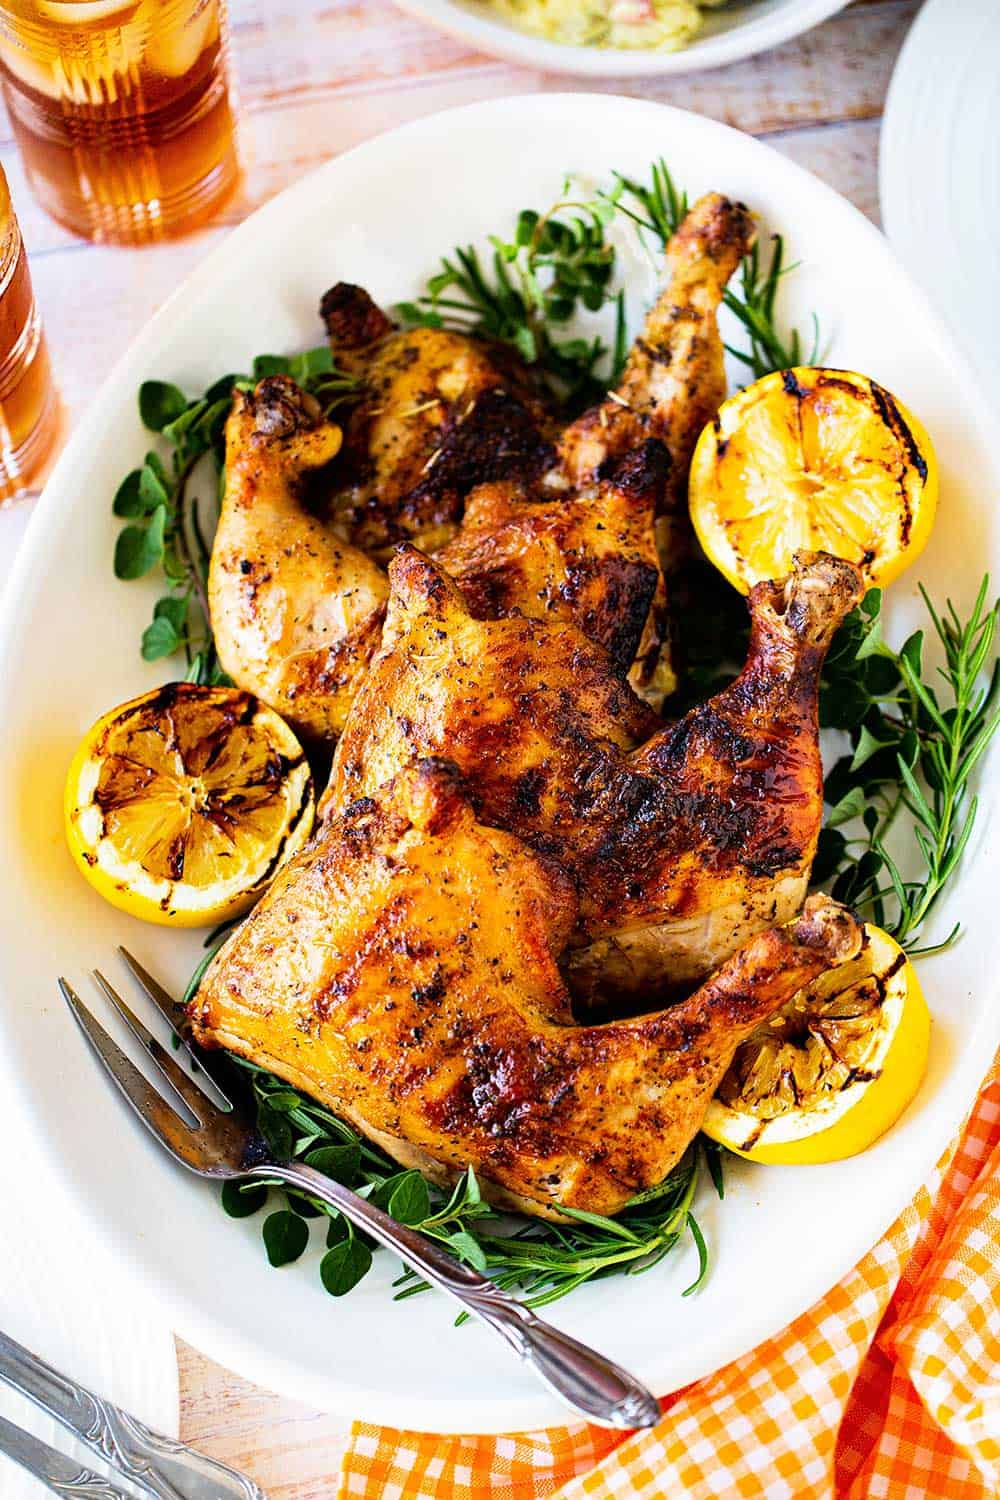 Three grilled chicken leg quarters on an oval platter surround by grilled lemon halves and fresh herbs.